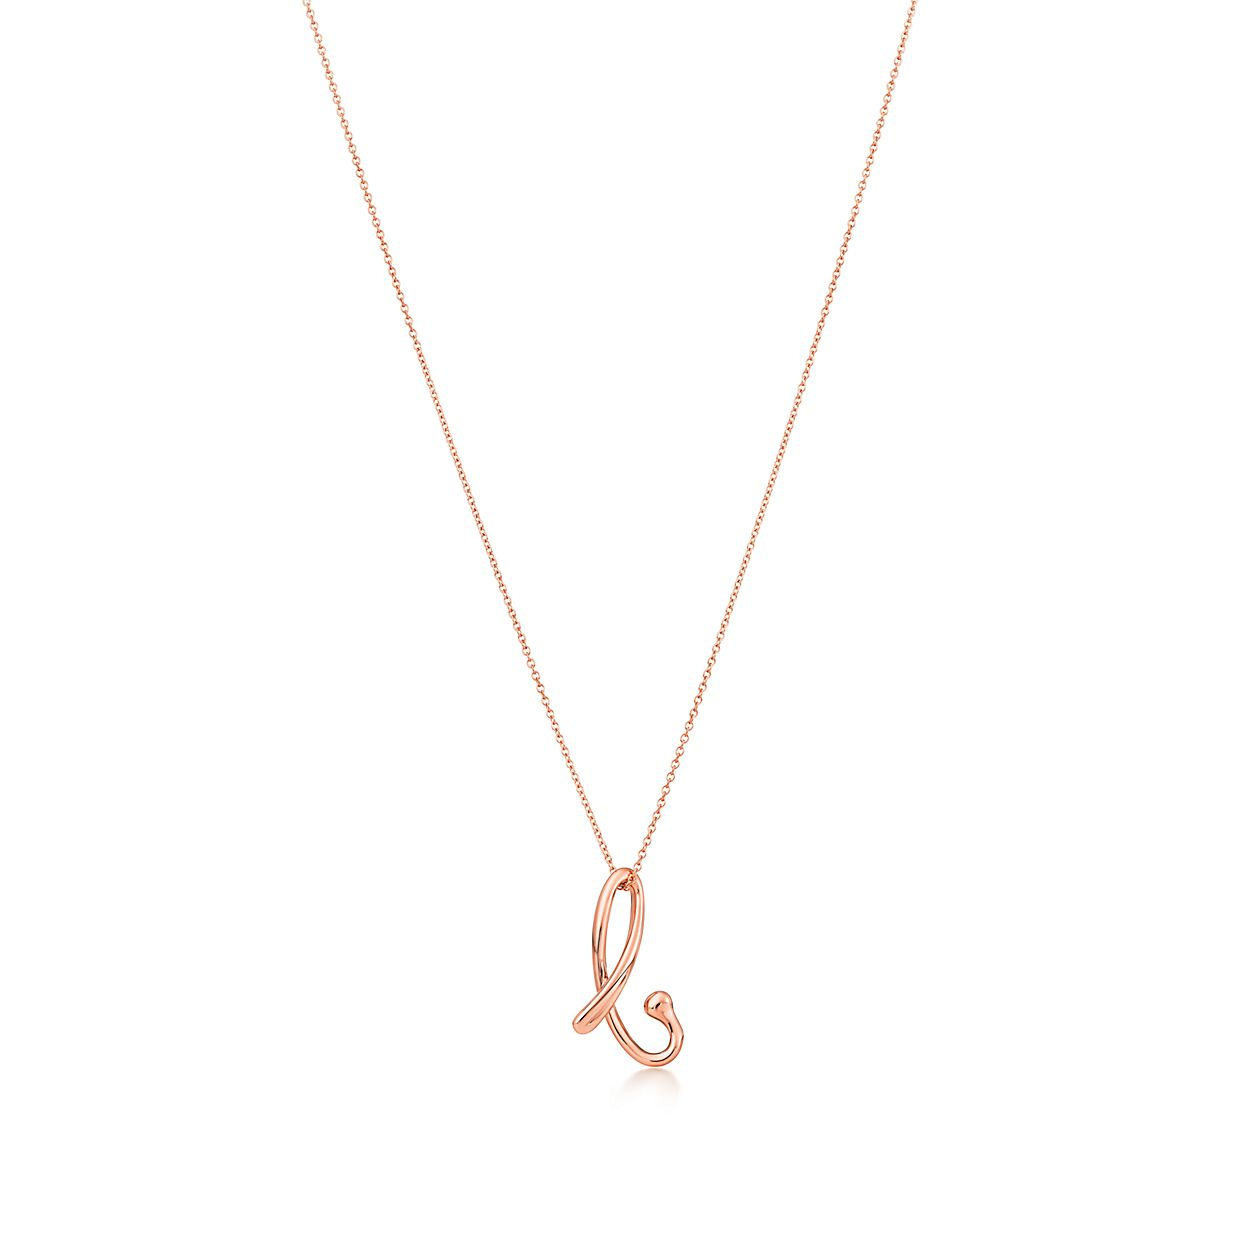 Elsa Peretti Alphabet pendant in 18k rose gold Letters A-Z available - Size J Tiffany & Co. oF2sB